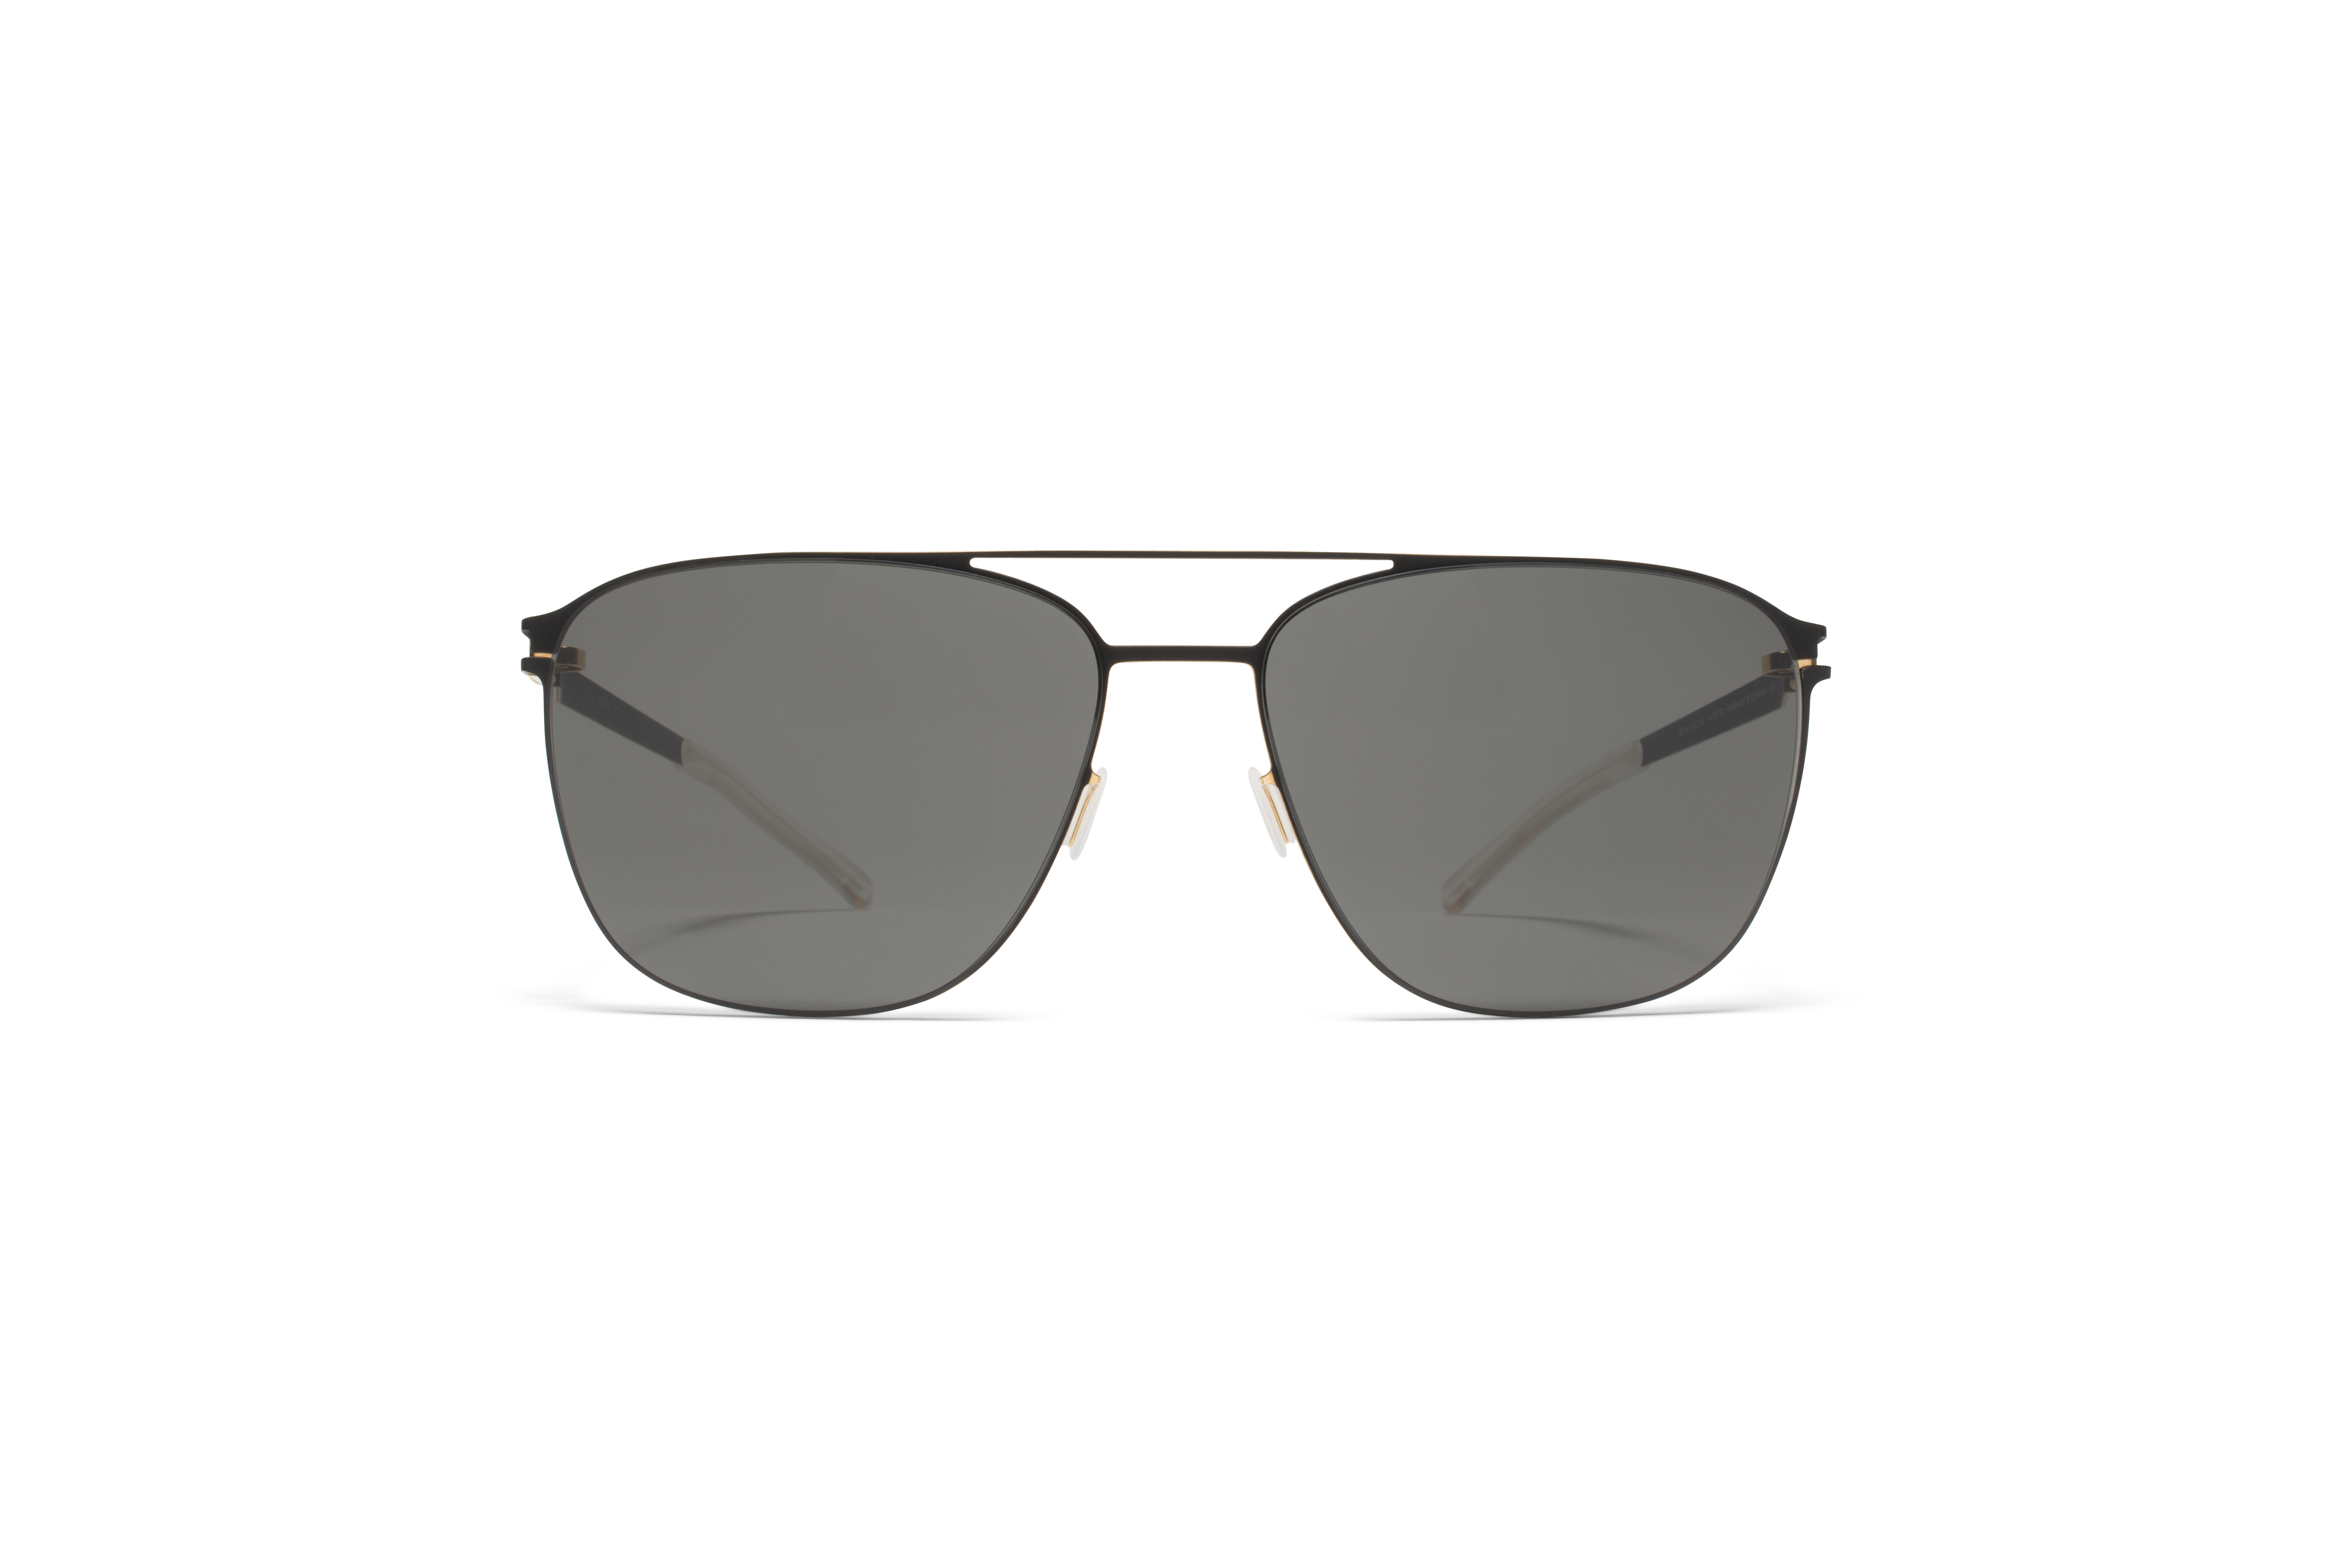 MYKITA No1 Sun Preston Black Gold Edges Darkgrey S58a6aa6f3b3e9